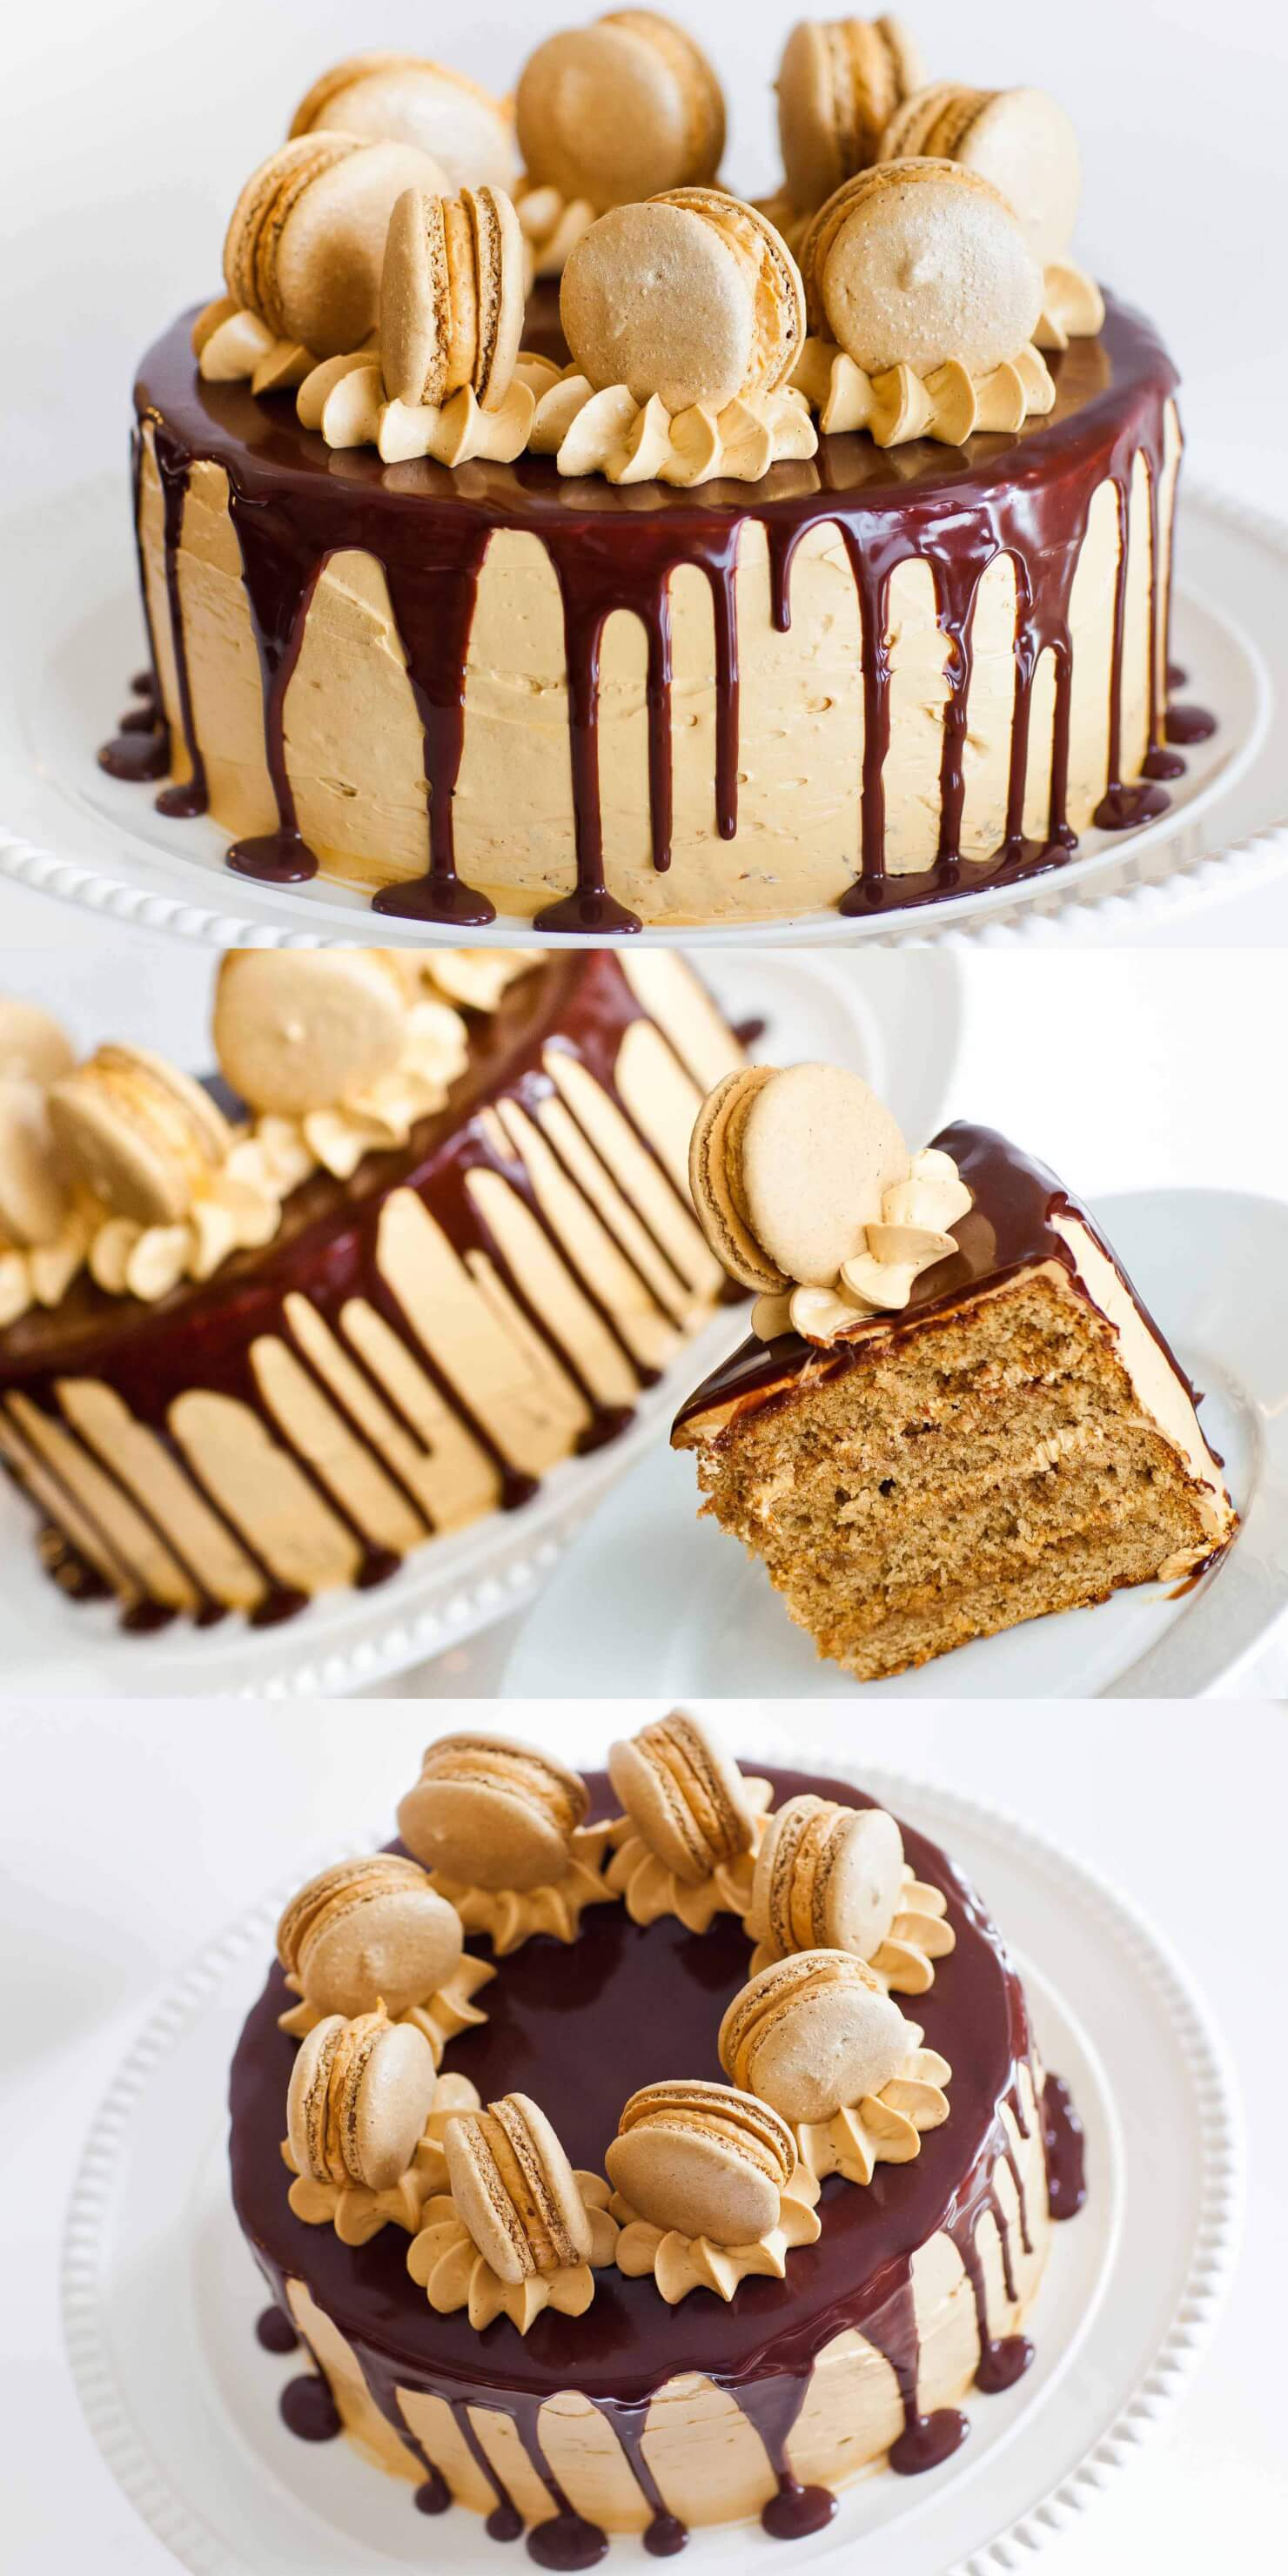 Choc Peanut Butter Cake Recipe